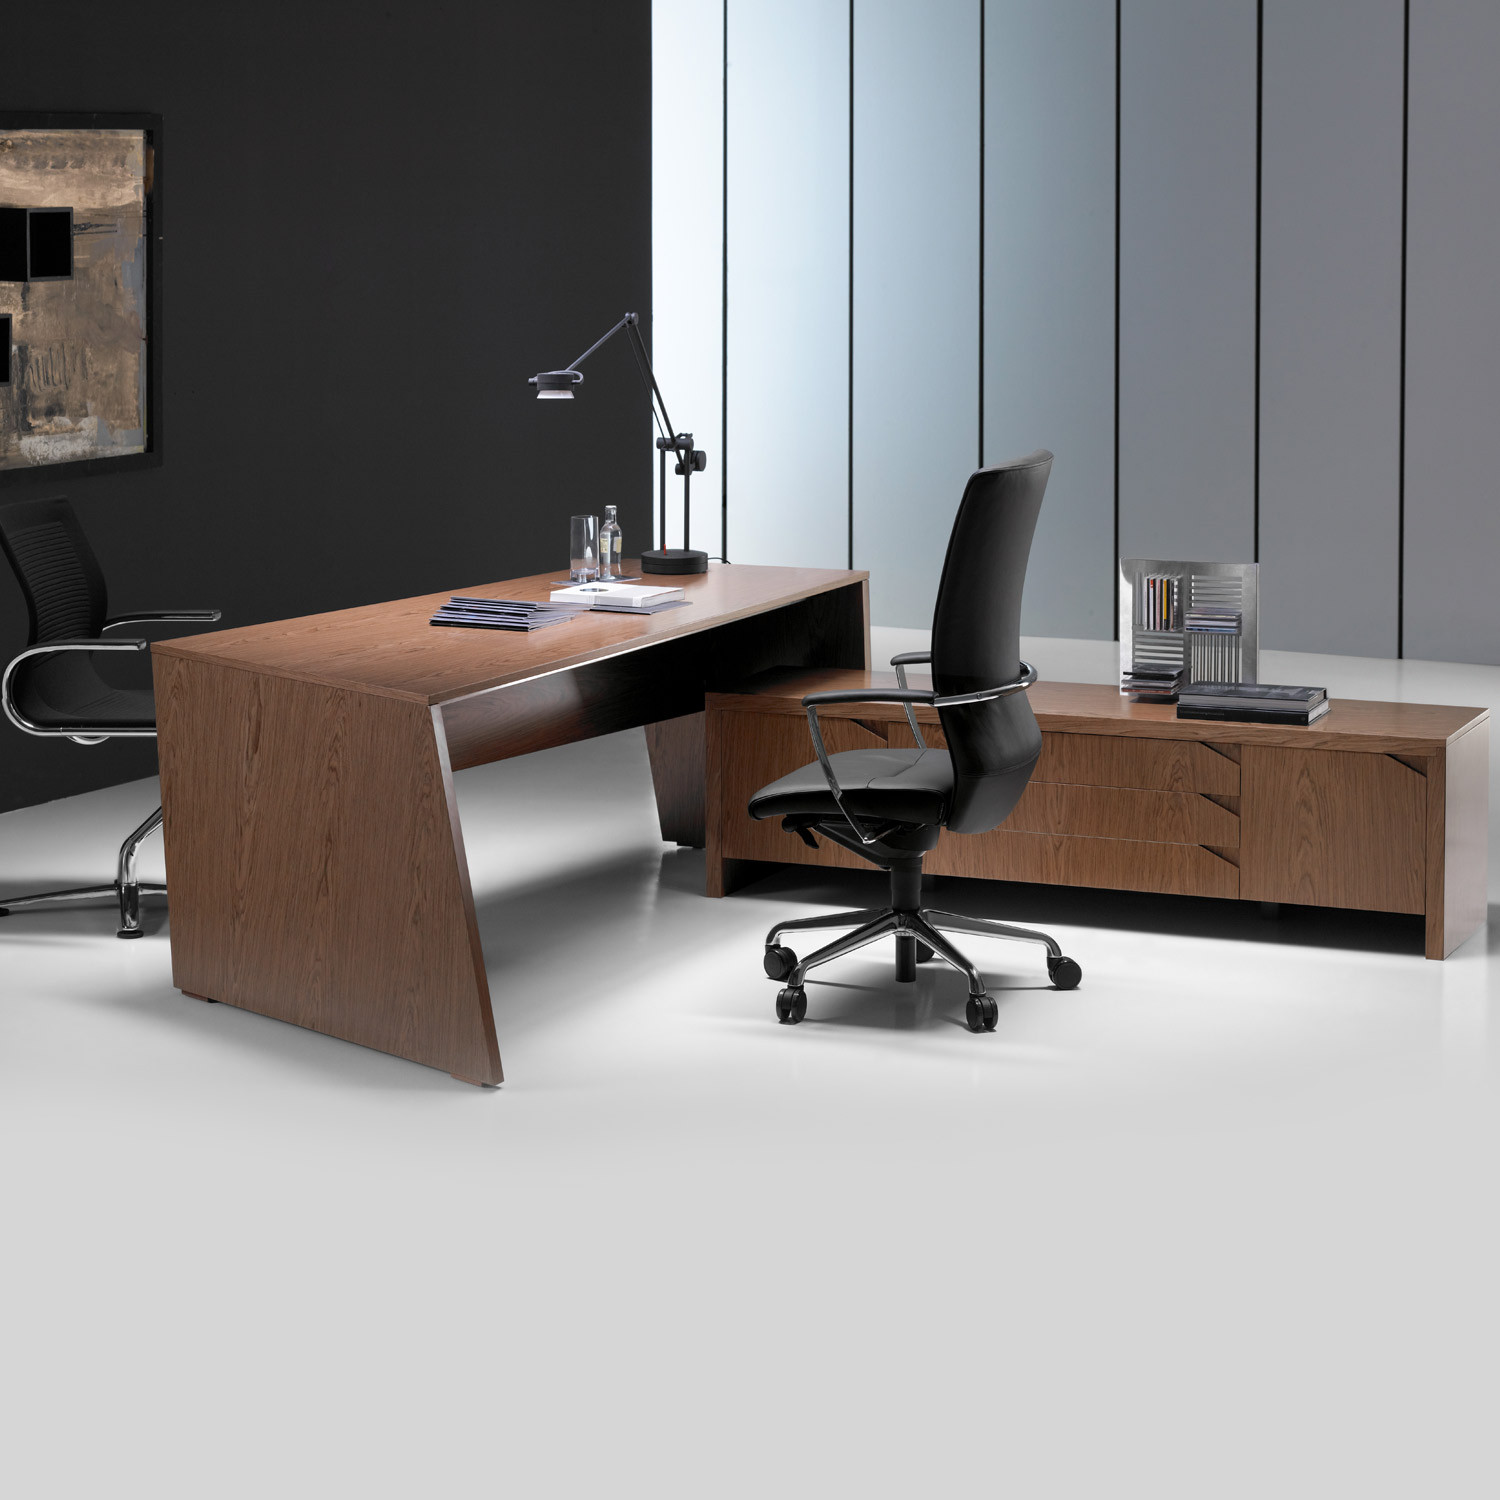 Origami Executive Desk in Walnut